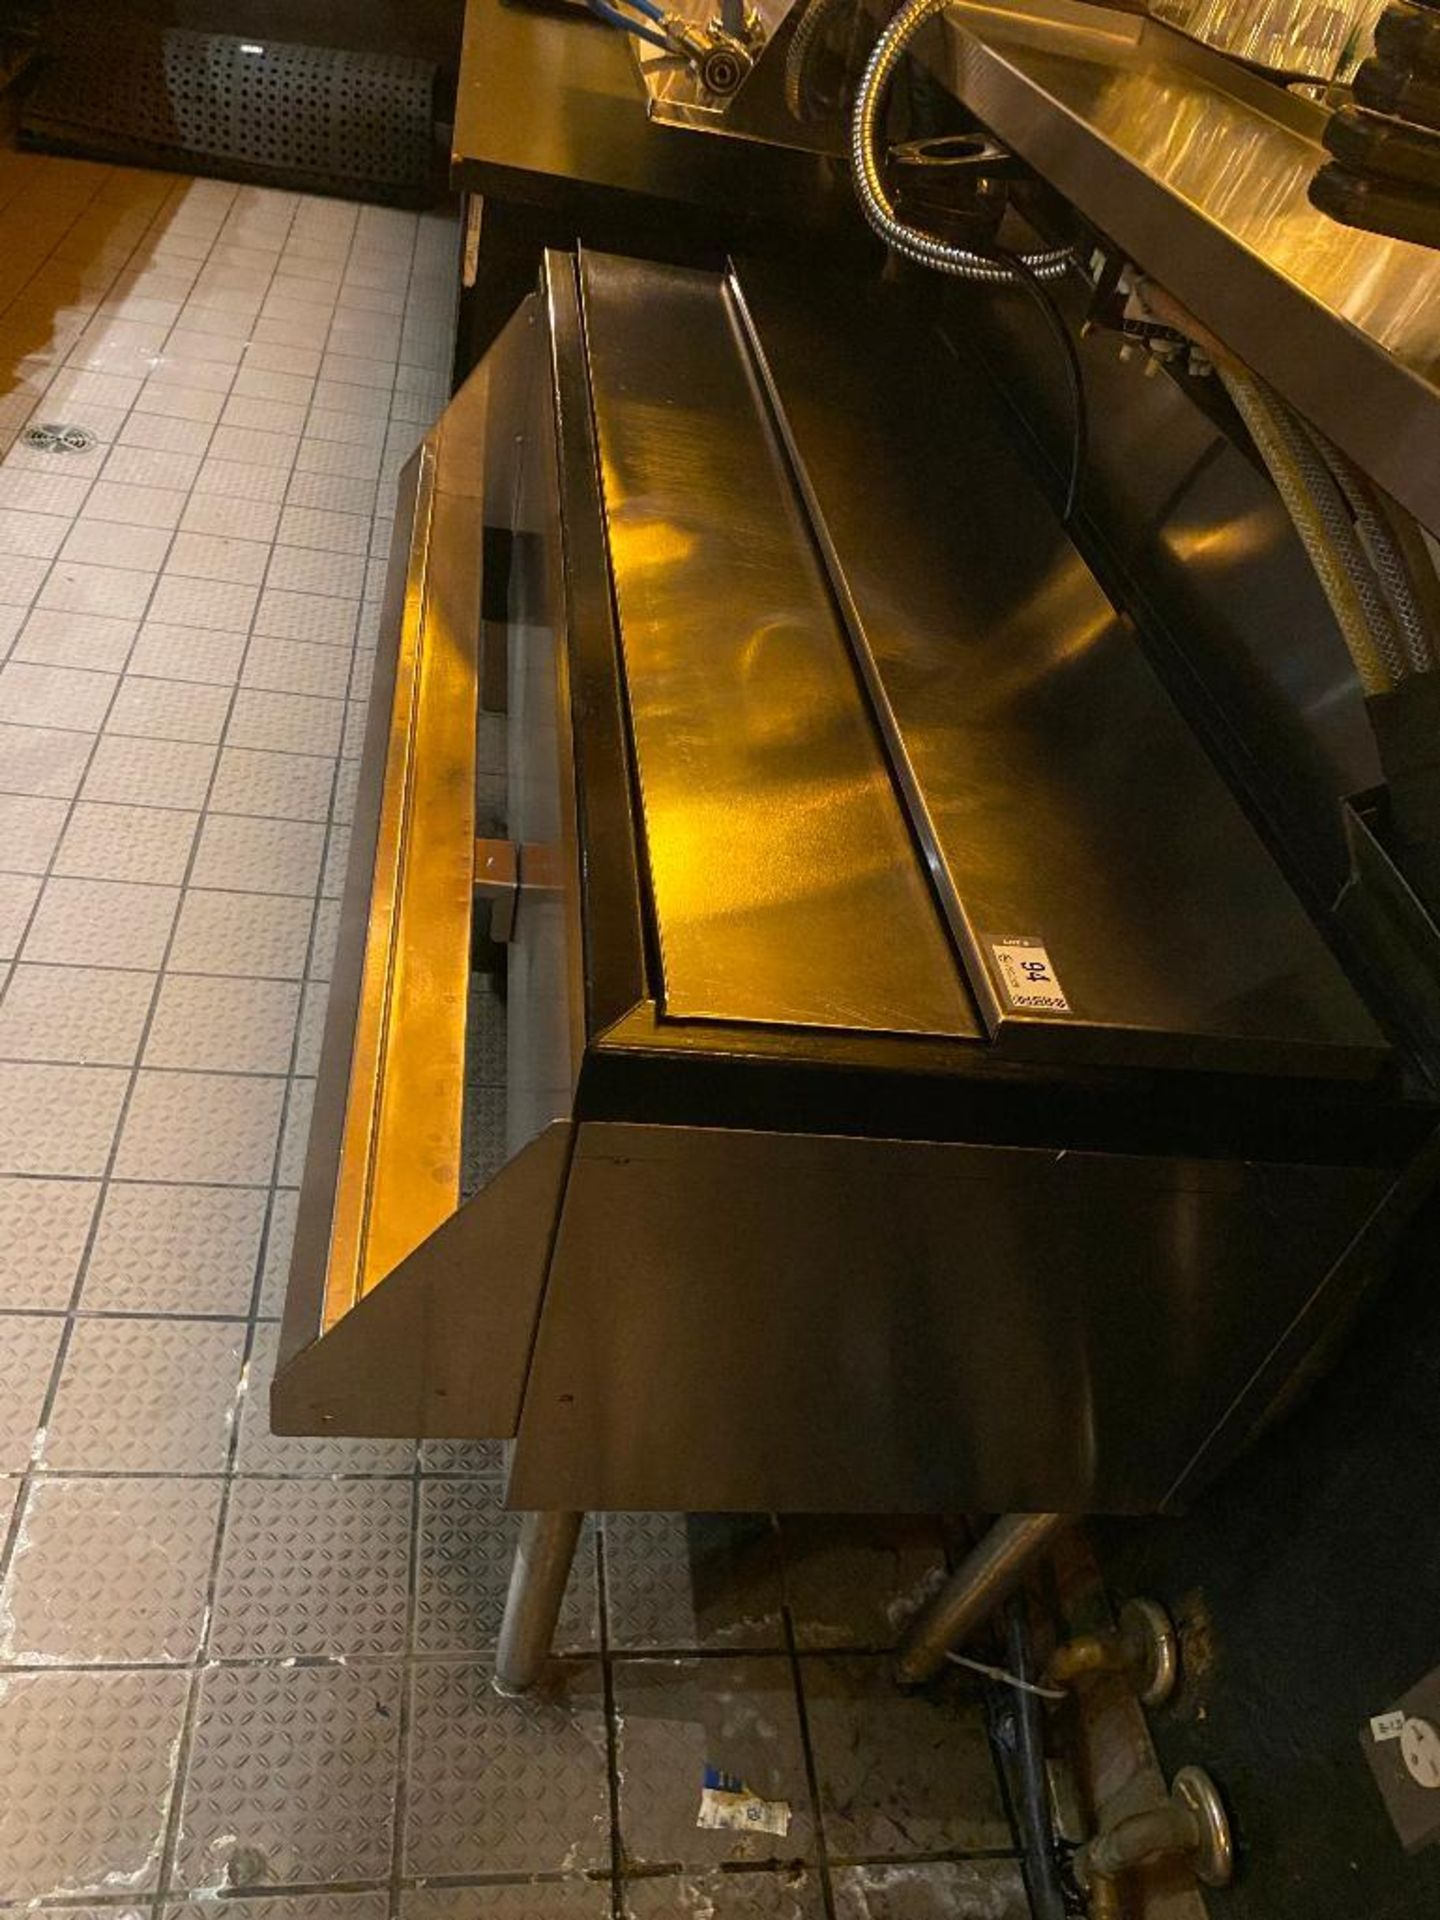 PERLICK STAINLESS STEEL ICE BIN WITH SINGLE SPEED RAIL - NOTE: REQUIRES DISCONNECT, PLEASE INSPECT - Image 3 of 5